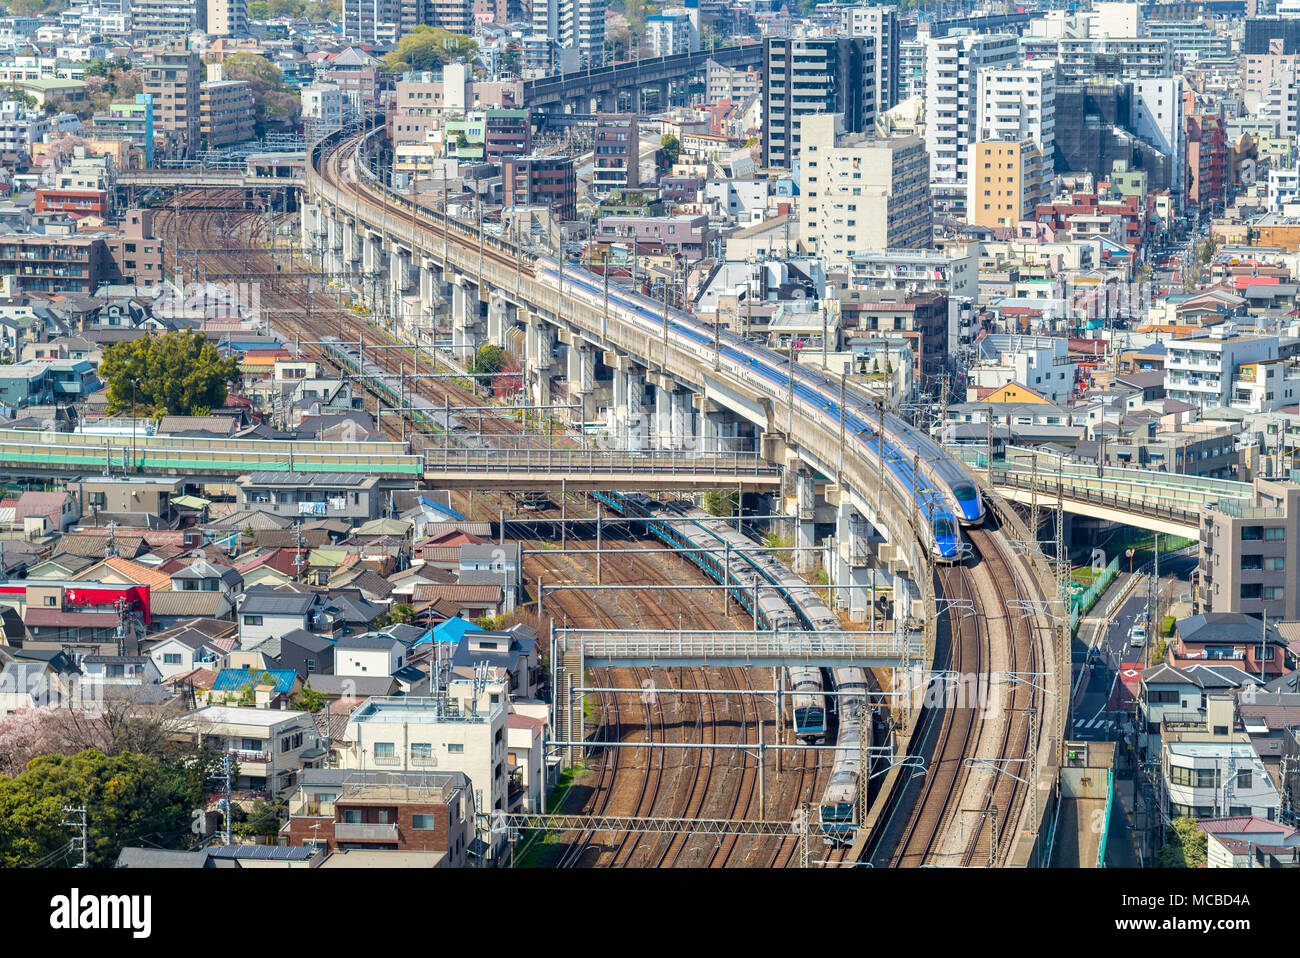 railway and metro system of tokyo, japan - Stock Image